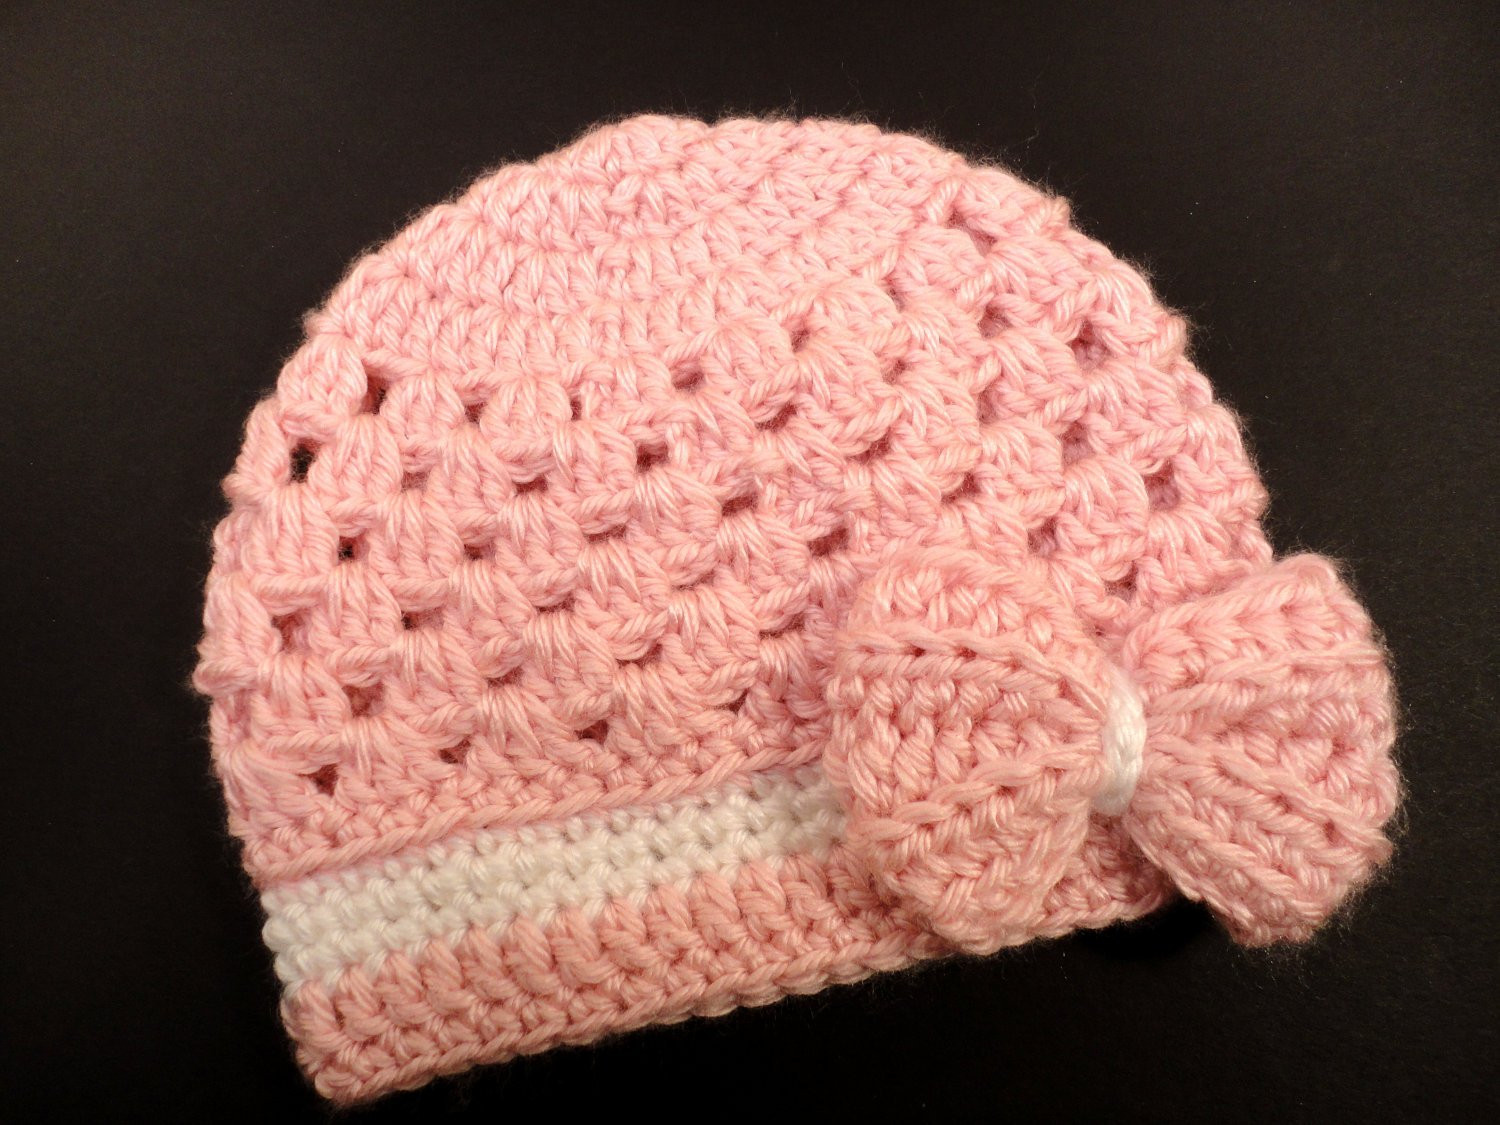 Best Of Crochet Baby Hat Pattern Newborn to 3 Years Baby Girl Hat Crochet Infant Hat Of Awesome 46 Ideas Crochet Infant Hat